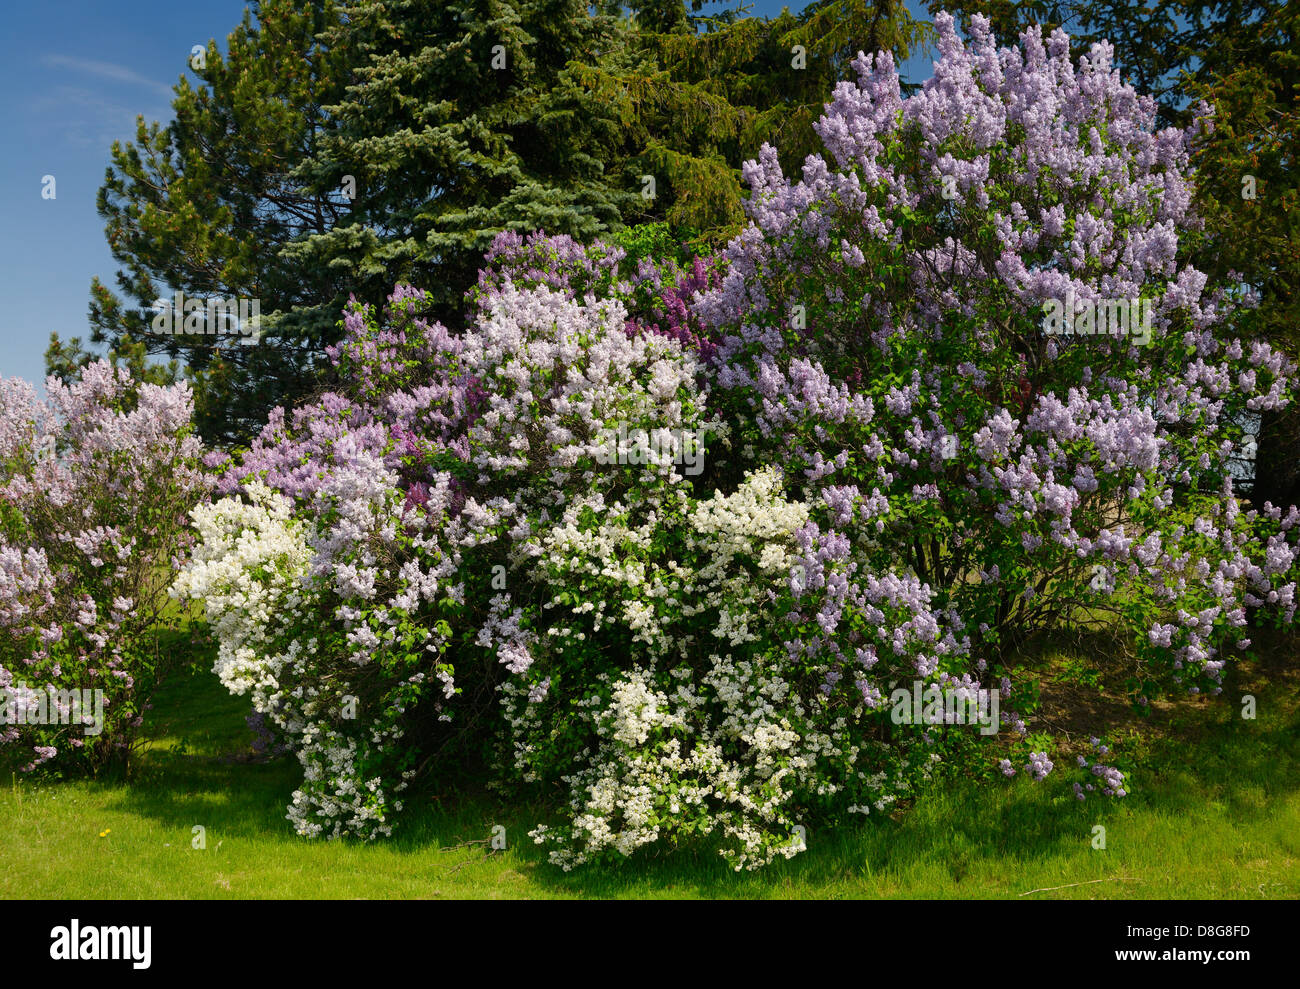 Naturalized Common Lilac bushes flowering beside Spruce trees in Spring Toronto Canada - Stock Image